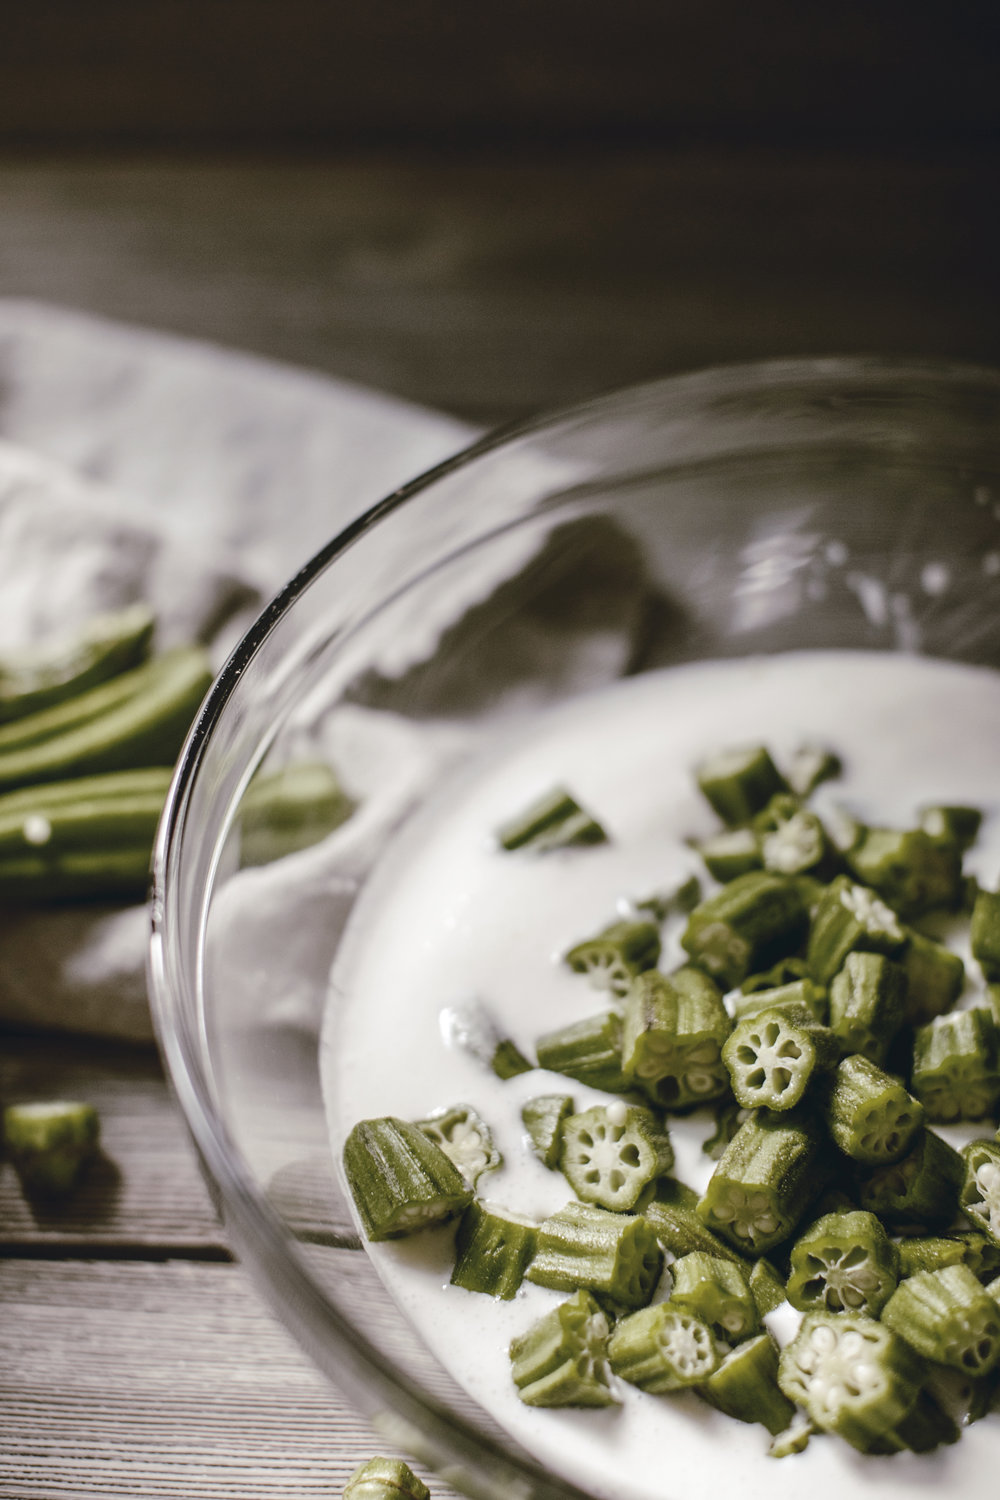 soaking okra in buttermilk / heirloomed